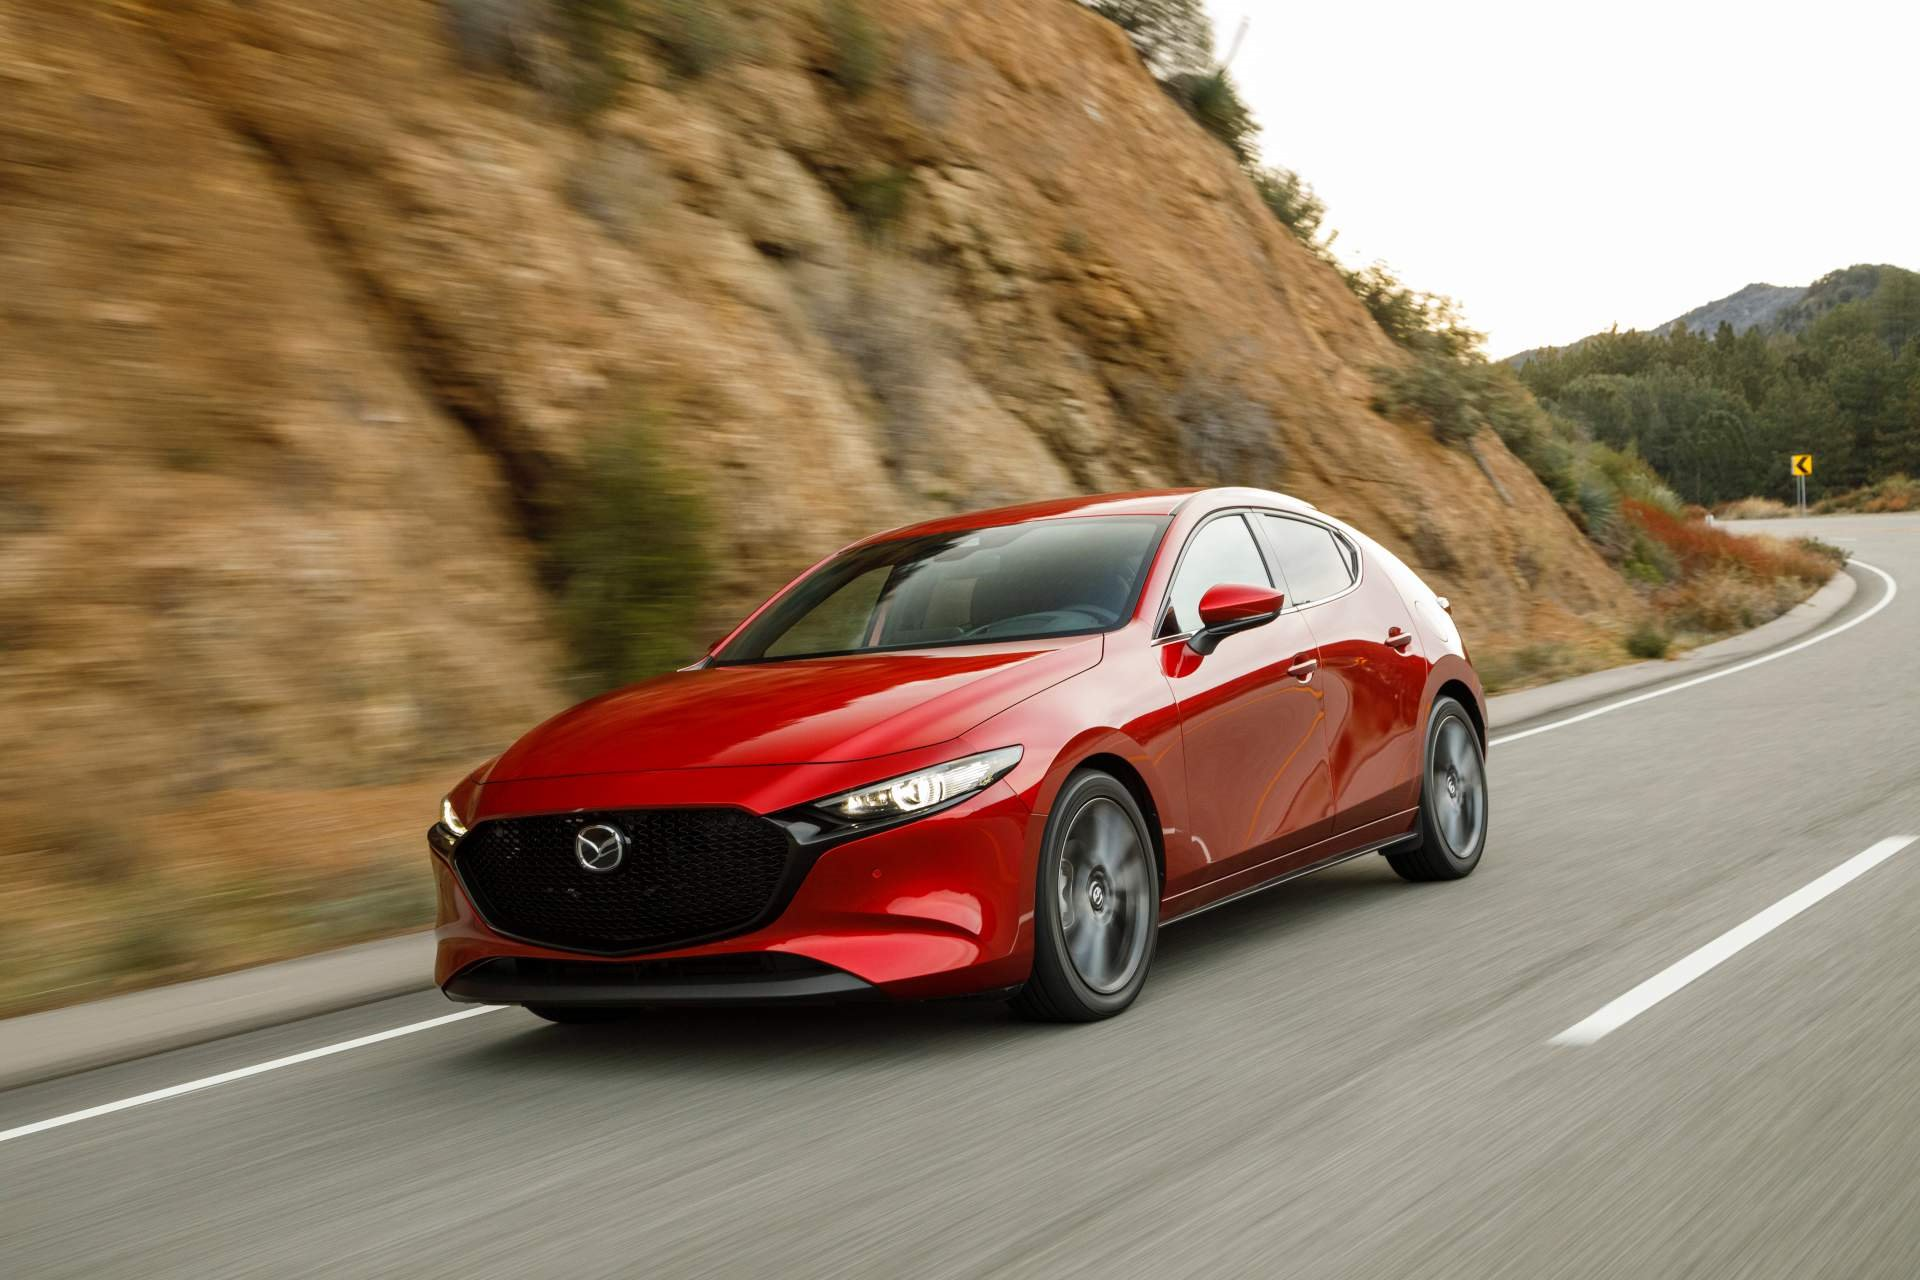 New 2019 Mazda-Mazda3 Sedan Preferred Mazda3 Sedan Preferred for sale $25,600 at M and V Leasing in Brooklyn NY 11223 1